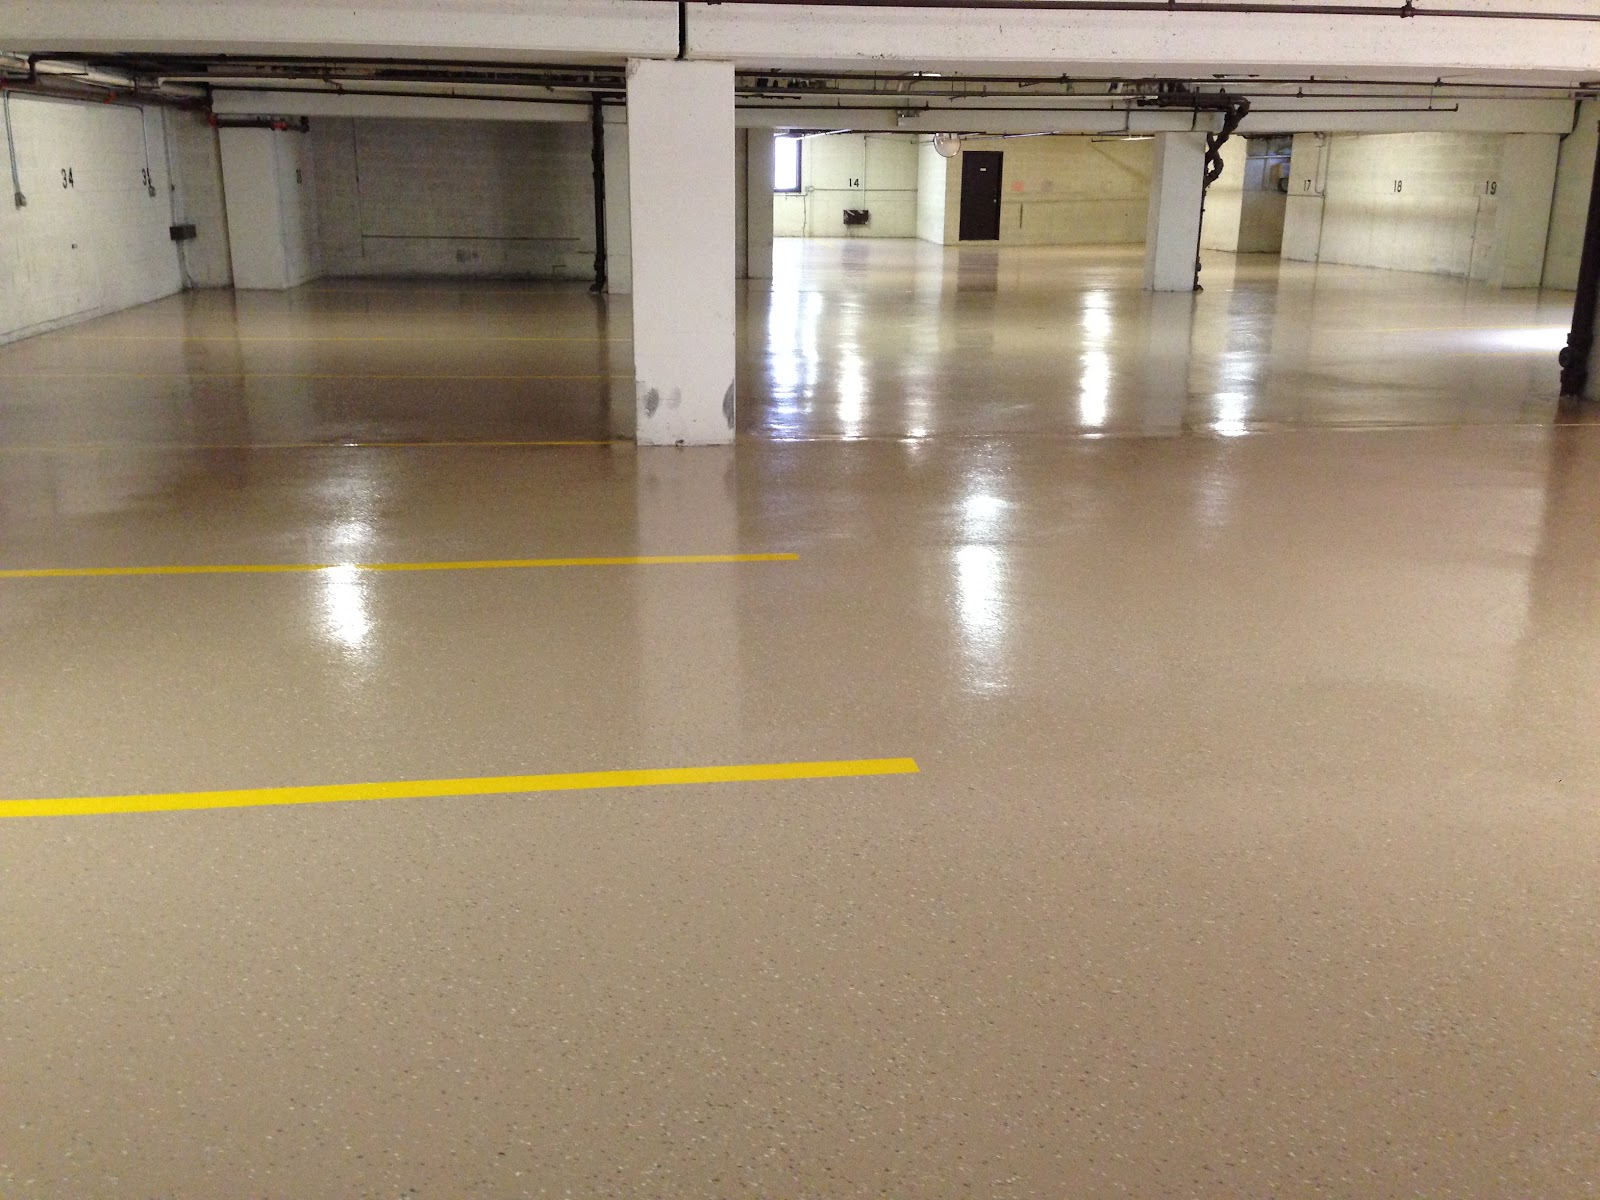 Condo Parking Garage Floor Coatings